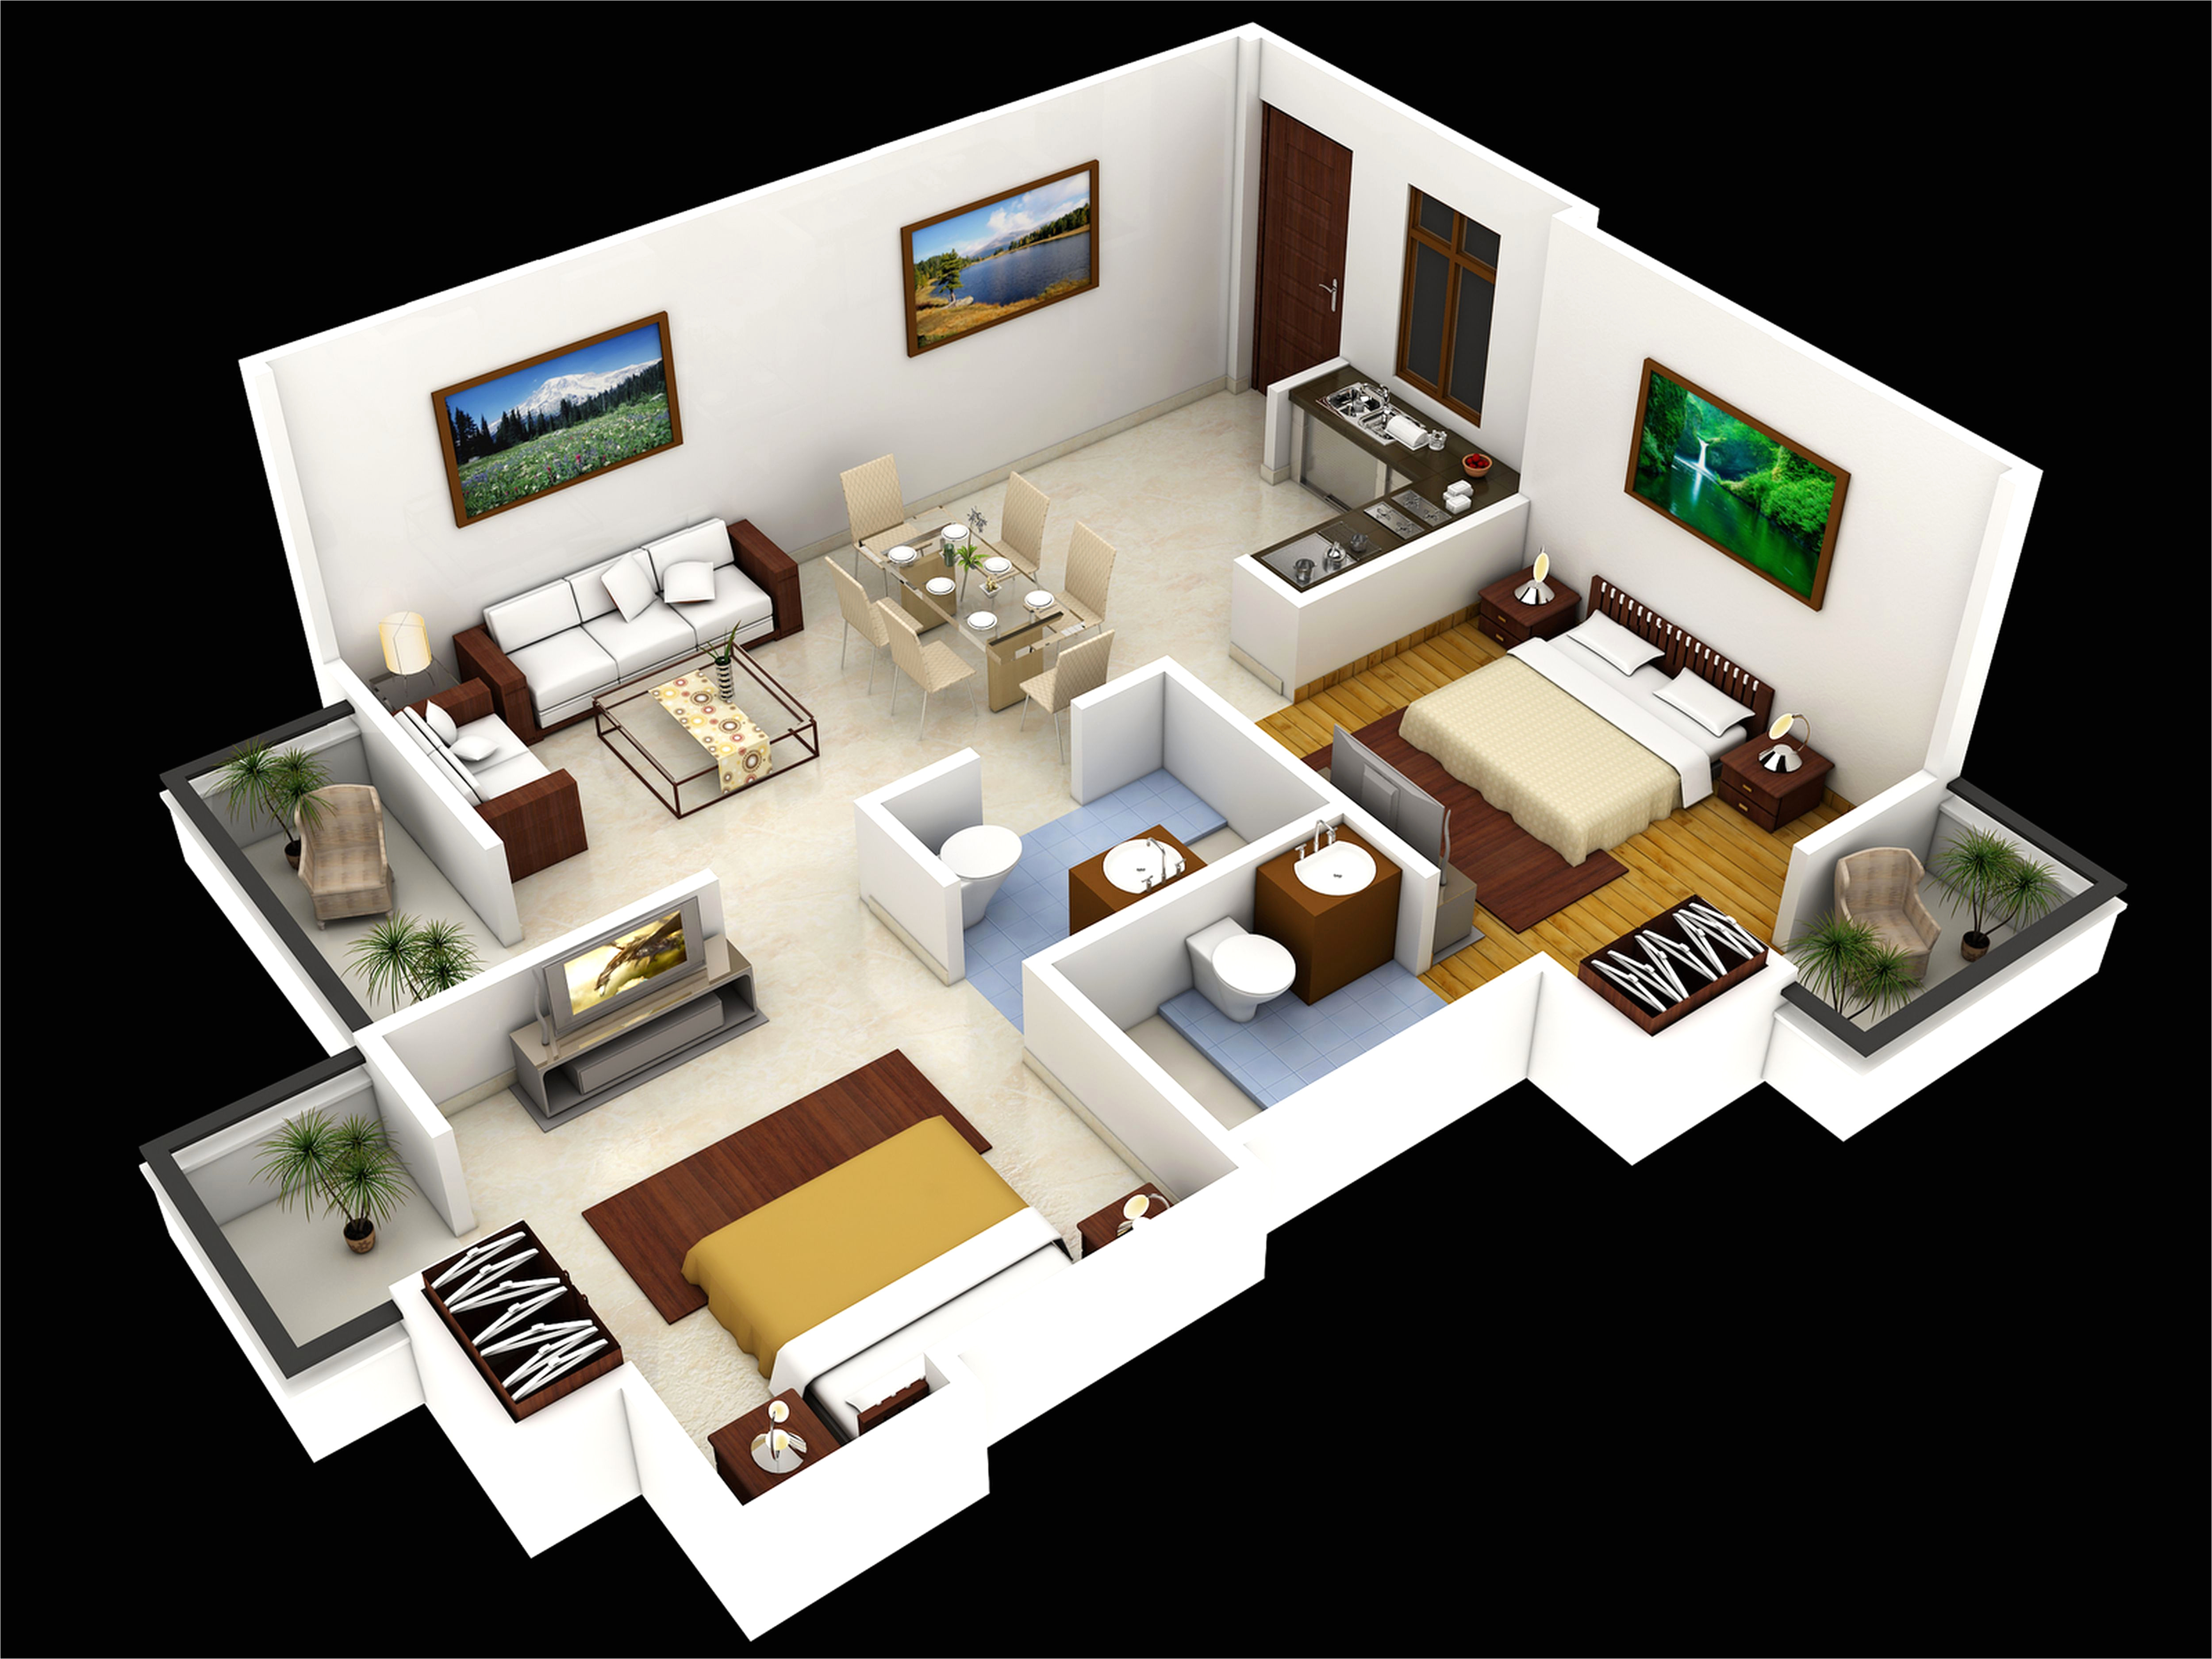 ipad apps for drawing house plans beautiful best ipad app for house floor plans